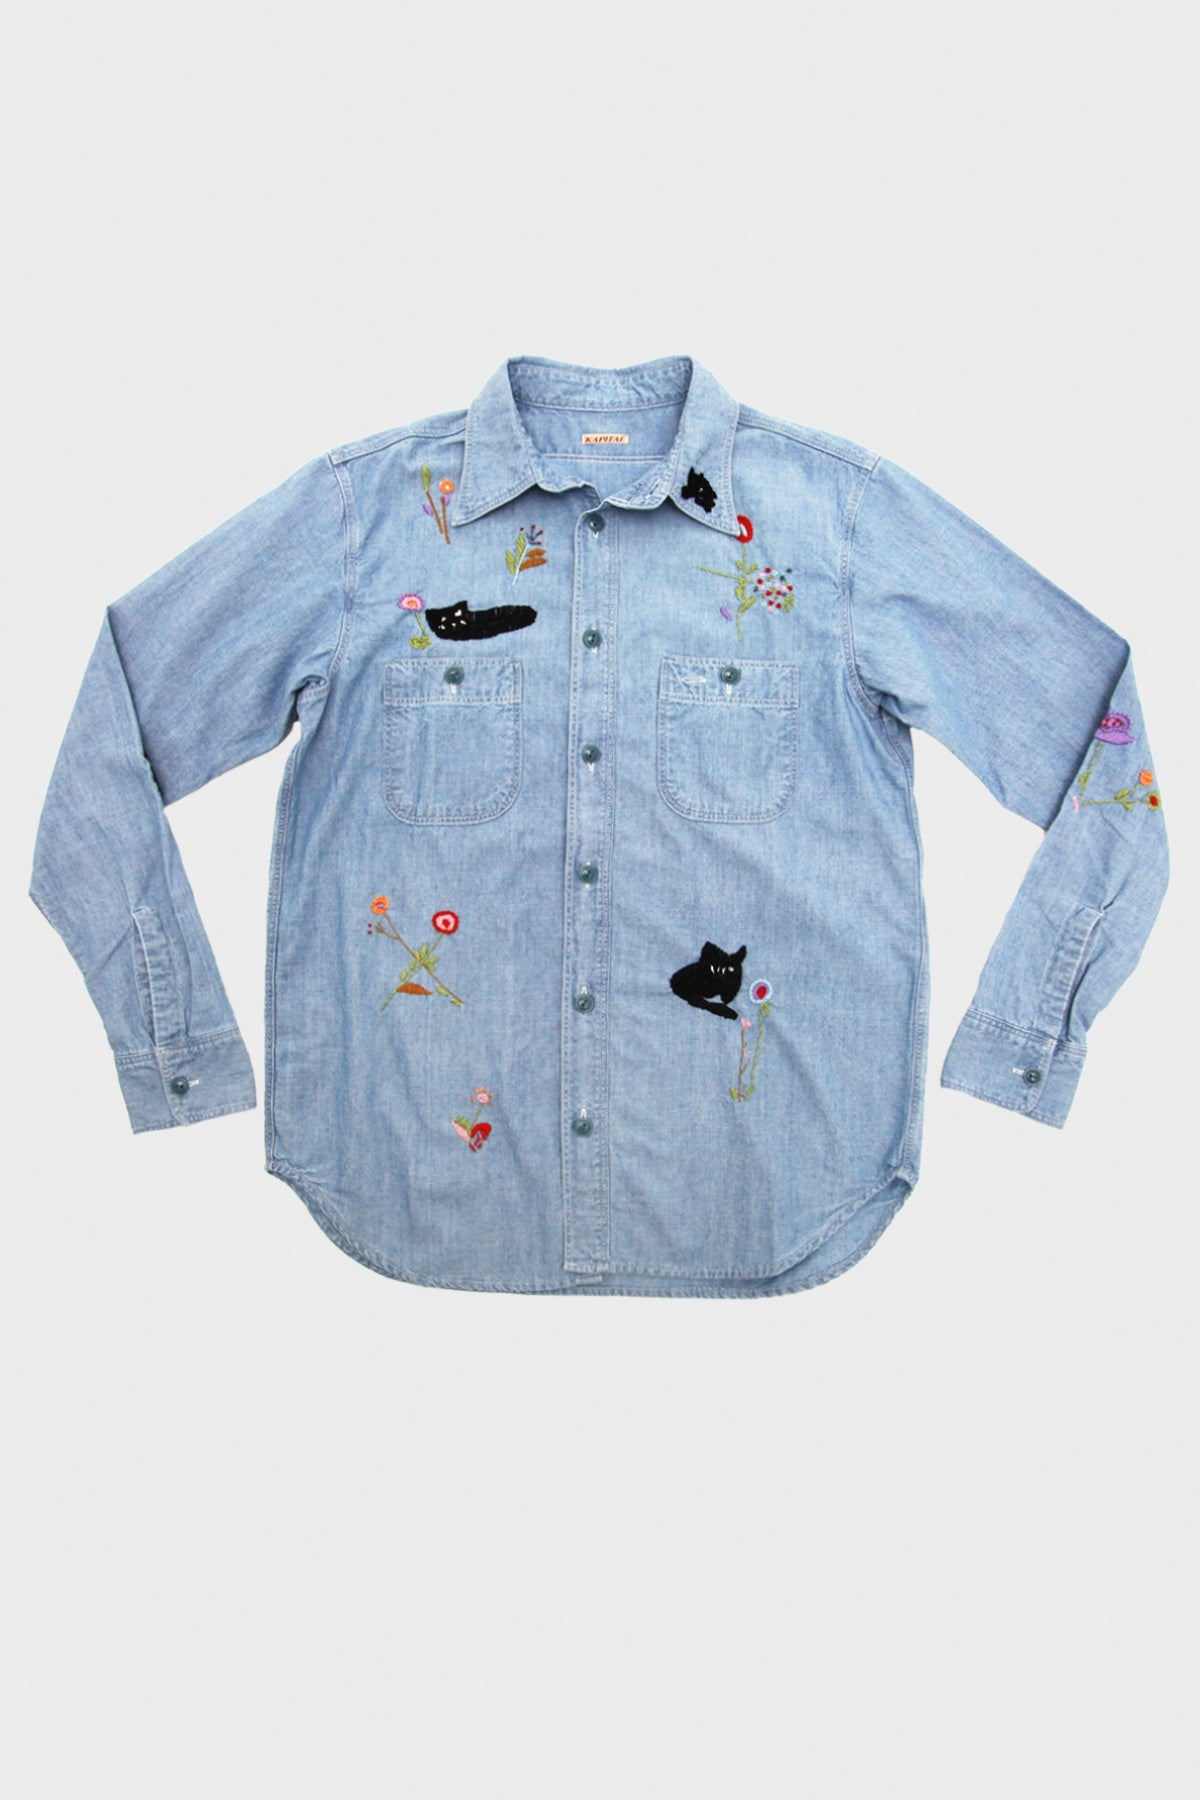 Kapital - Chambray Work Shirt (Cat Embroidery) - Sax - Canoe Club